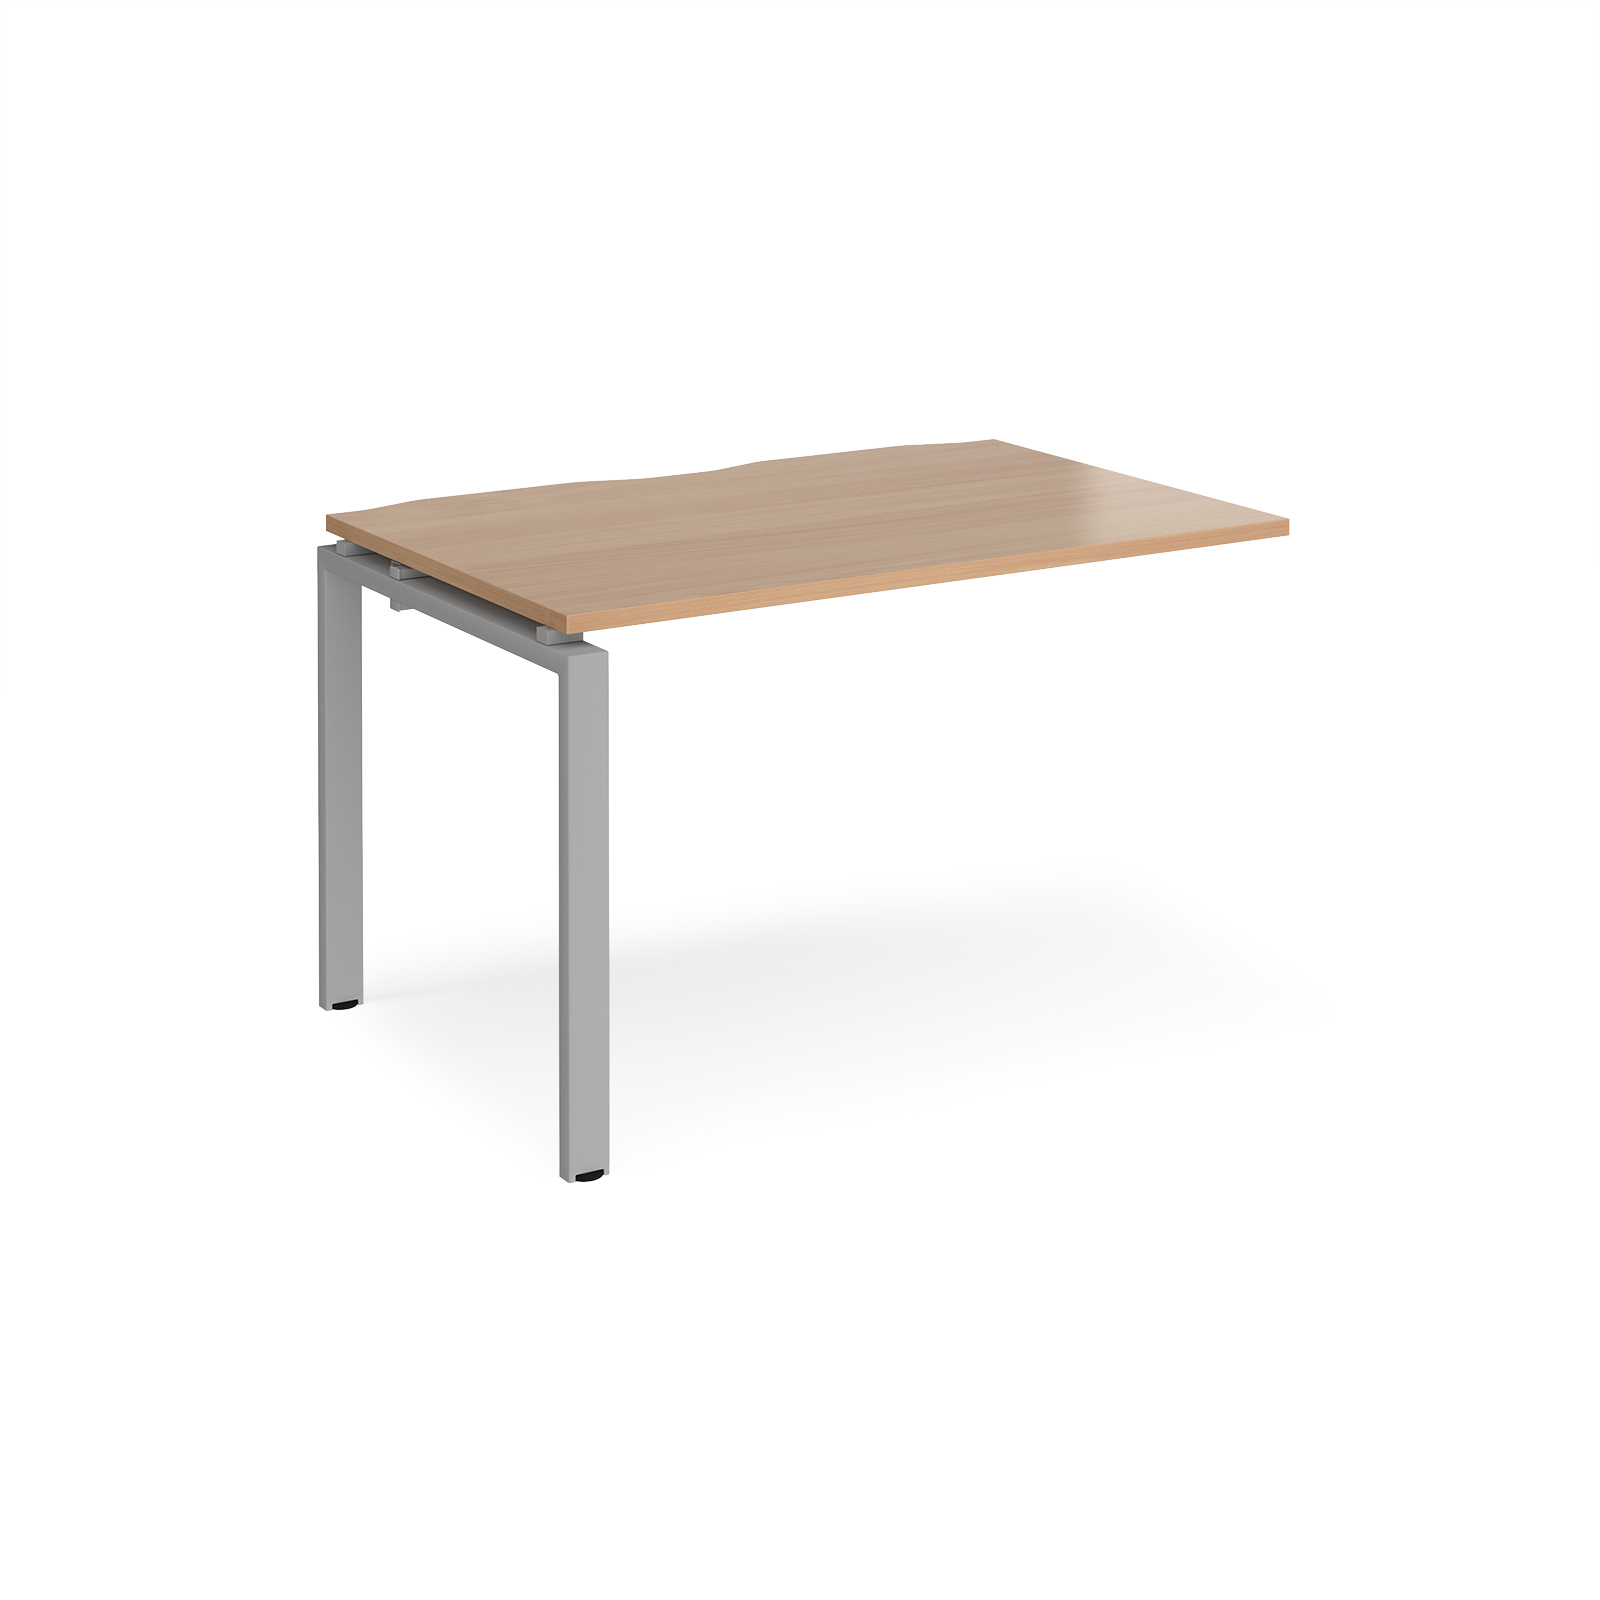 Image for Adapt II Add On Unit Single 1200x800mm Silver Frame Beech Top